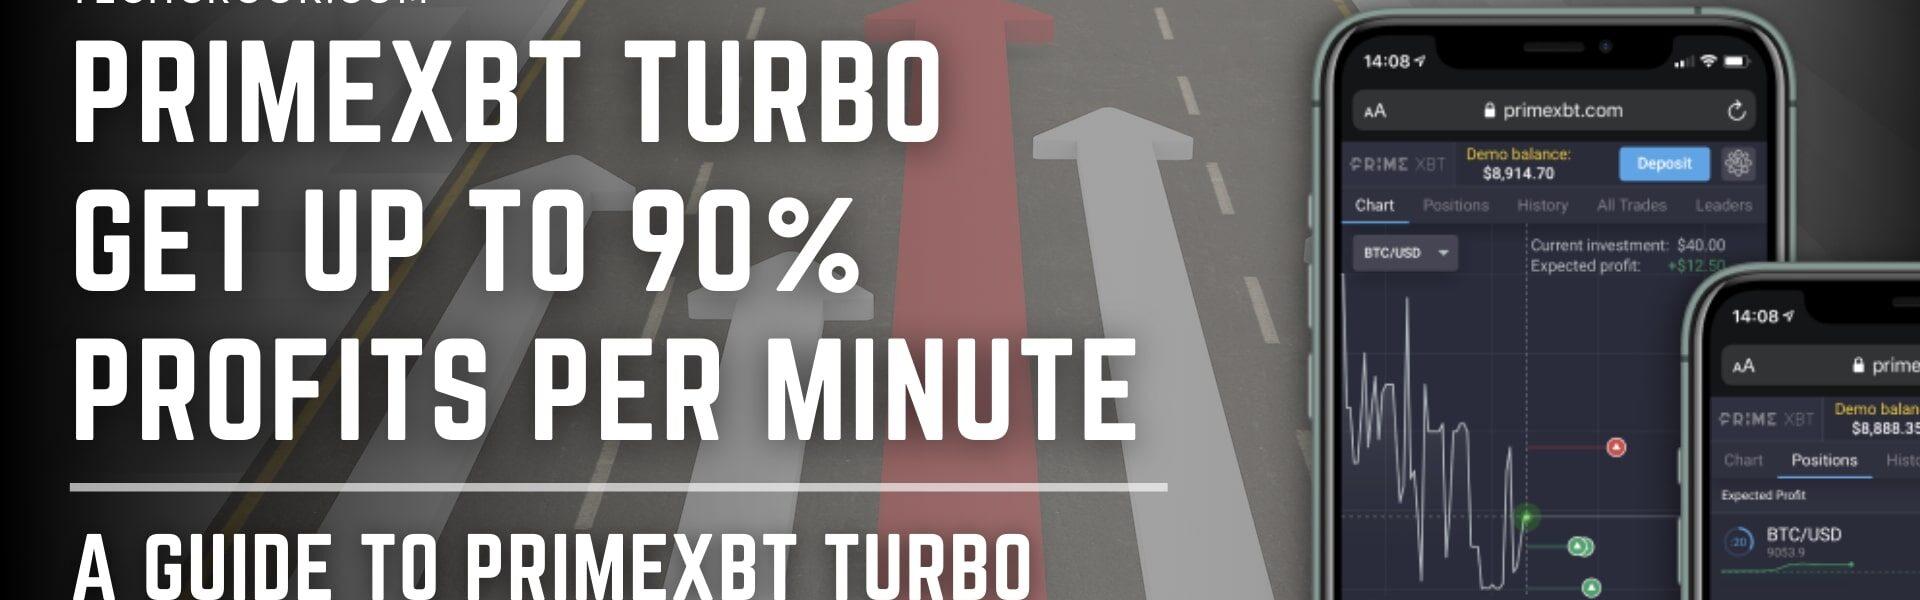 PrimeXBT Turbo working example how to use